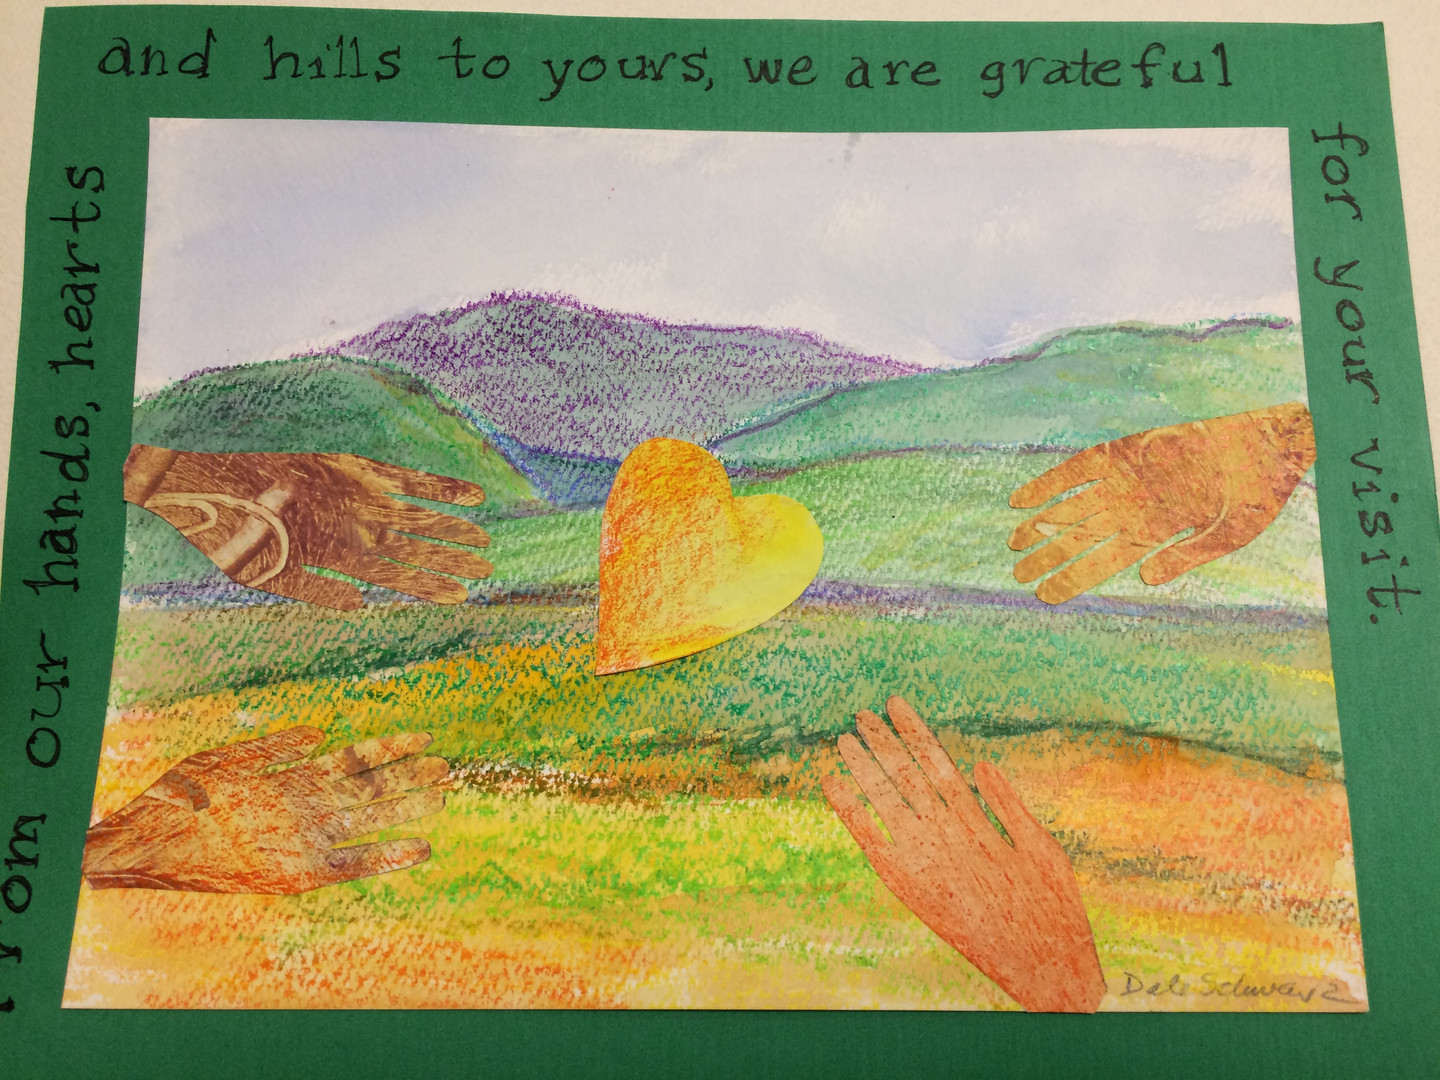 Thank-you card for Kentuckians created by Dale Schwarz